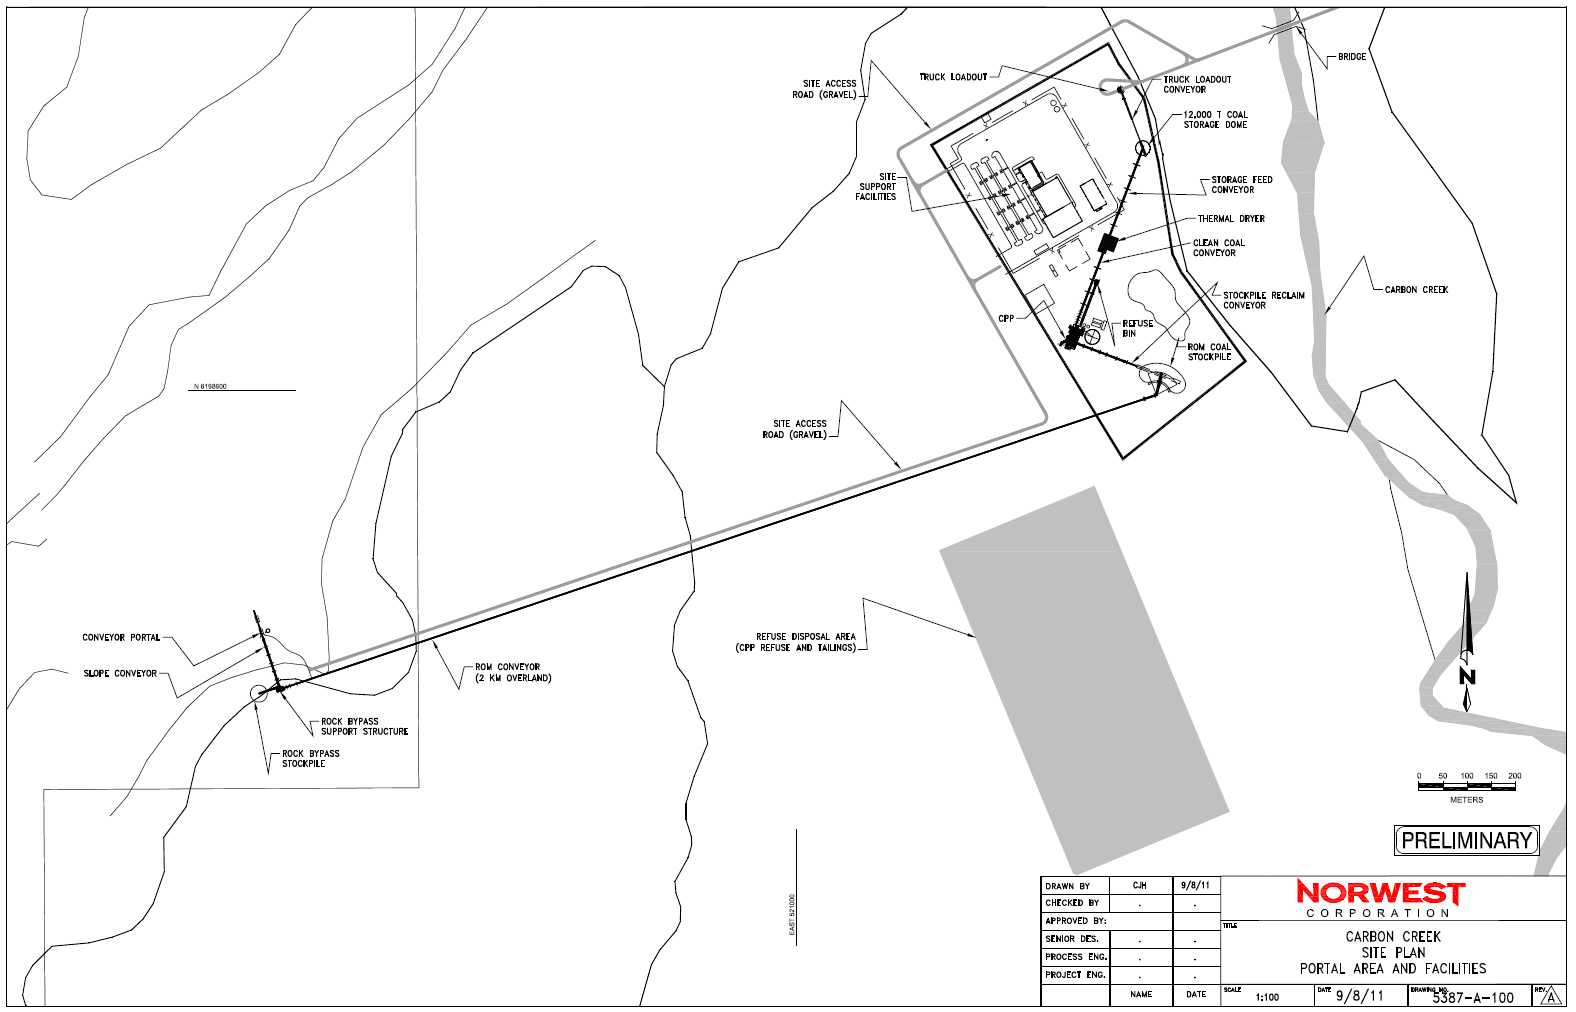 Cardero resource corp exhibit 991 filed by newsfilecorp fx31x1 exhibit99 1htm mine diagram 28 images coal mine diagram 28 images coal